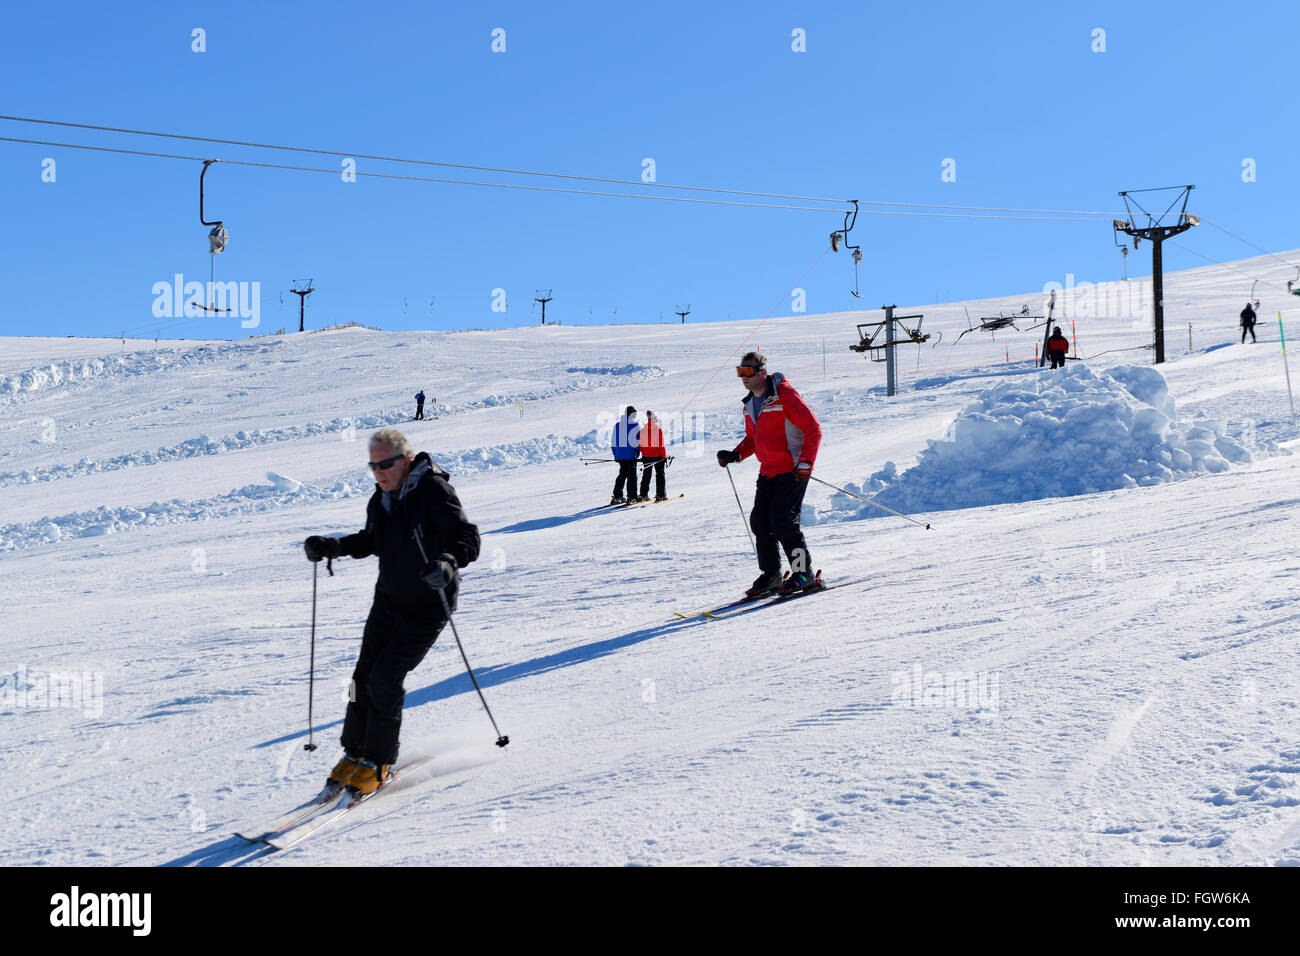 Skiers on downhill run at Cairngorm Mountain Ski Centre, Aviemore, Scottish Highlands, UK - Stock Image